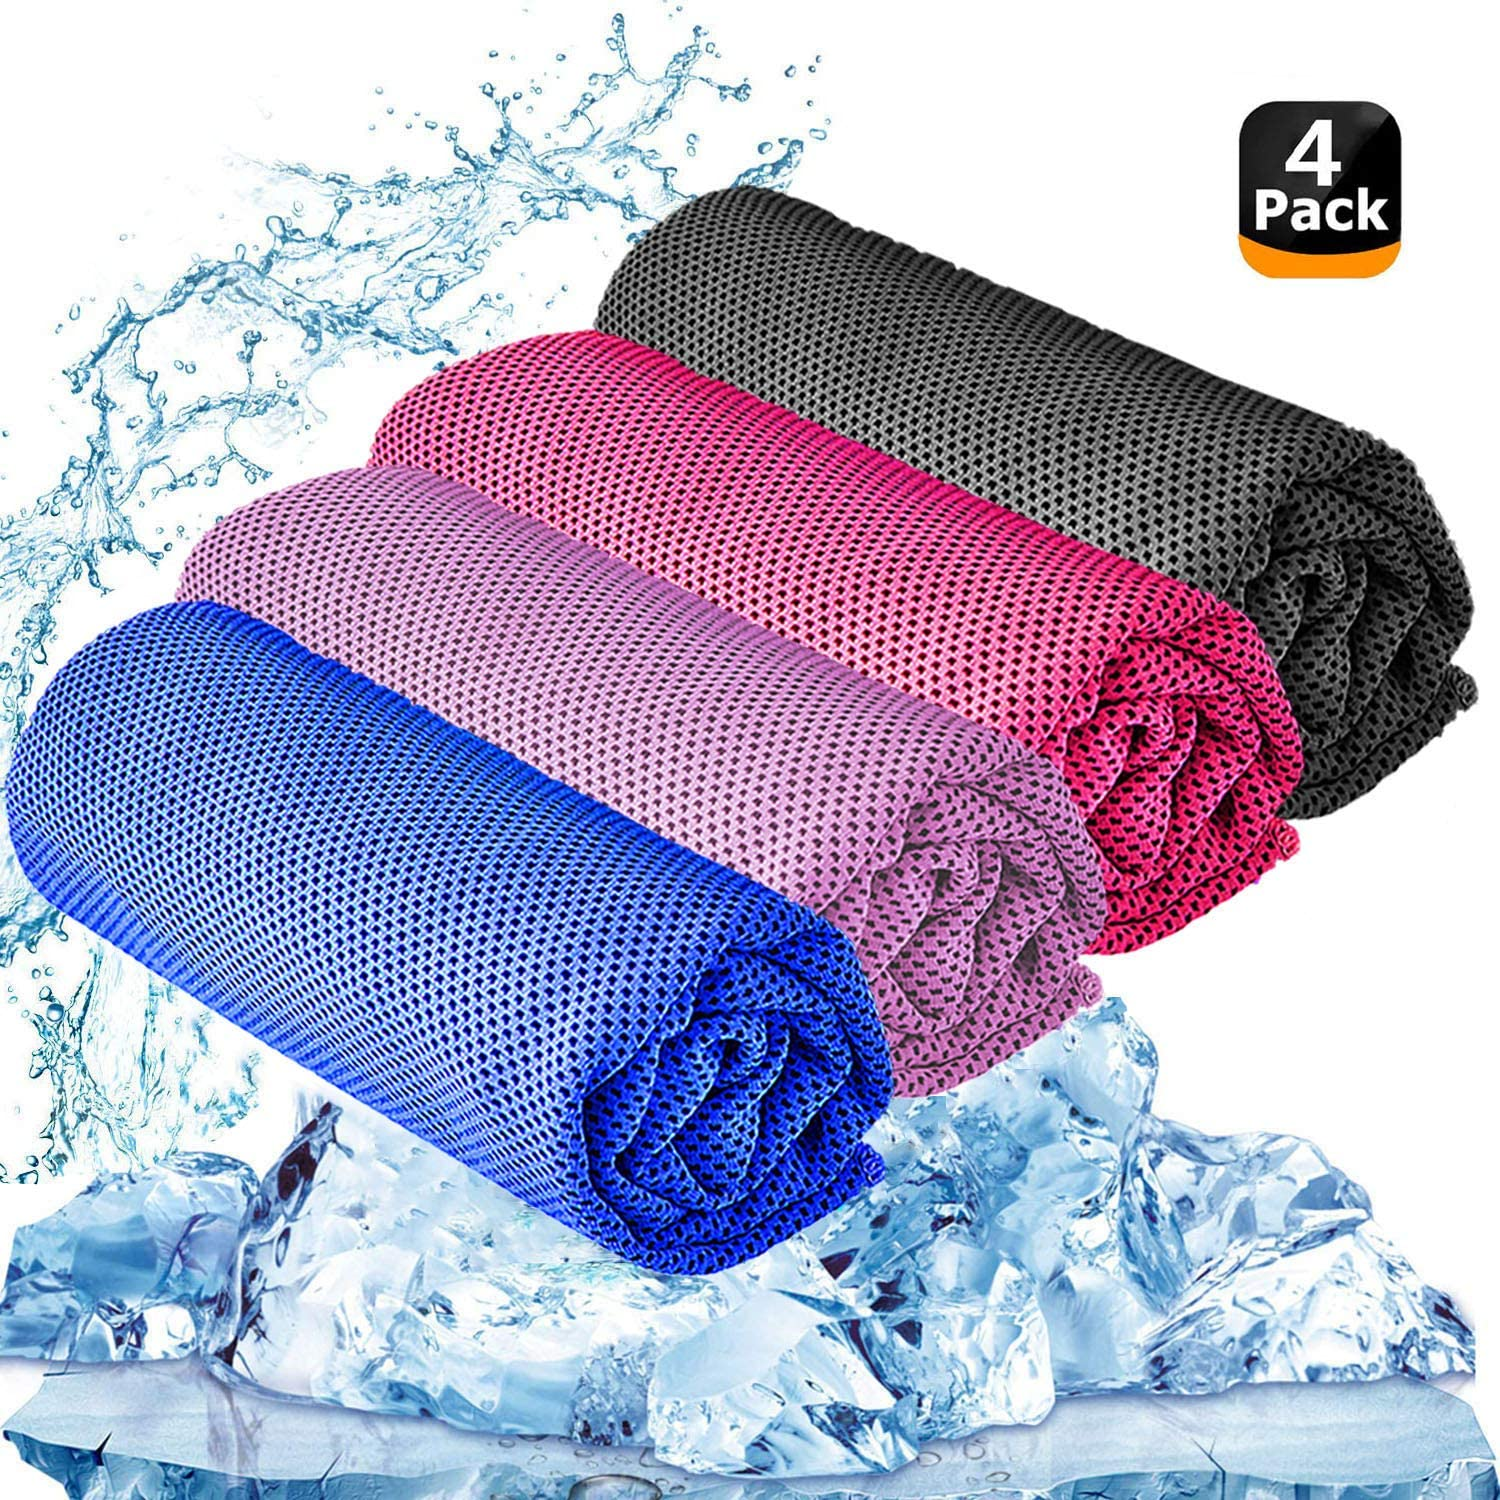 """YQXCC Cooling Towel 3 Pcs (47""""x12"""") Microfiber Towel for Instant Cooling Relief, Cool Cold Towel for Yoga Golf Travel Gym Sport Camping Football & Outdoor Sports (Dark Blue/Dark Gray/Rose Red/Pink)"""